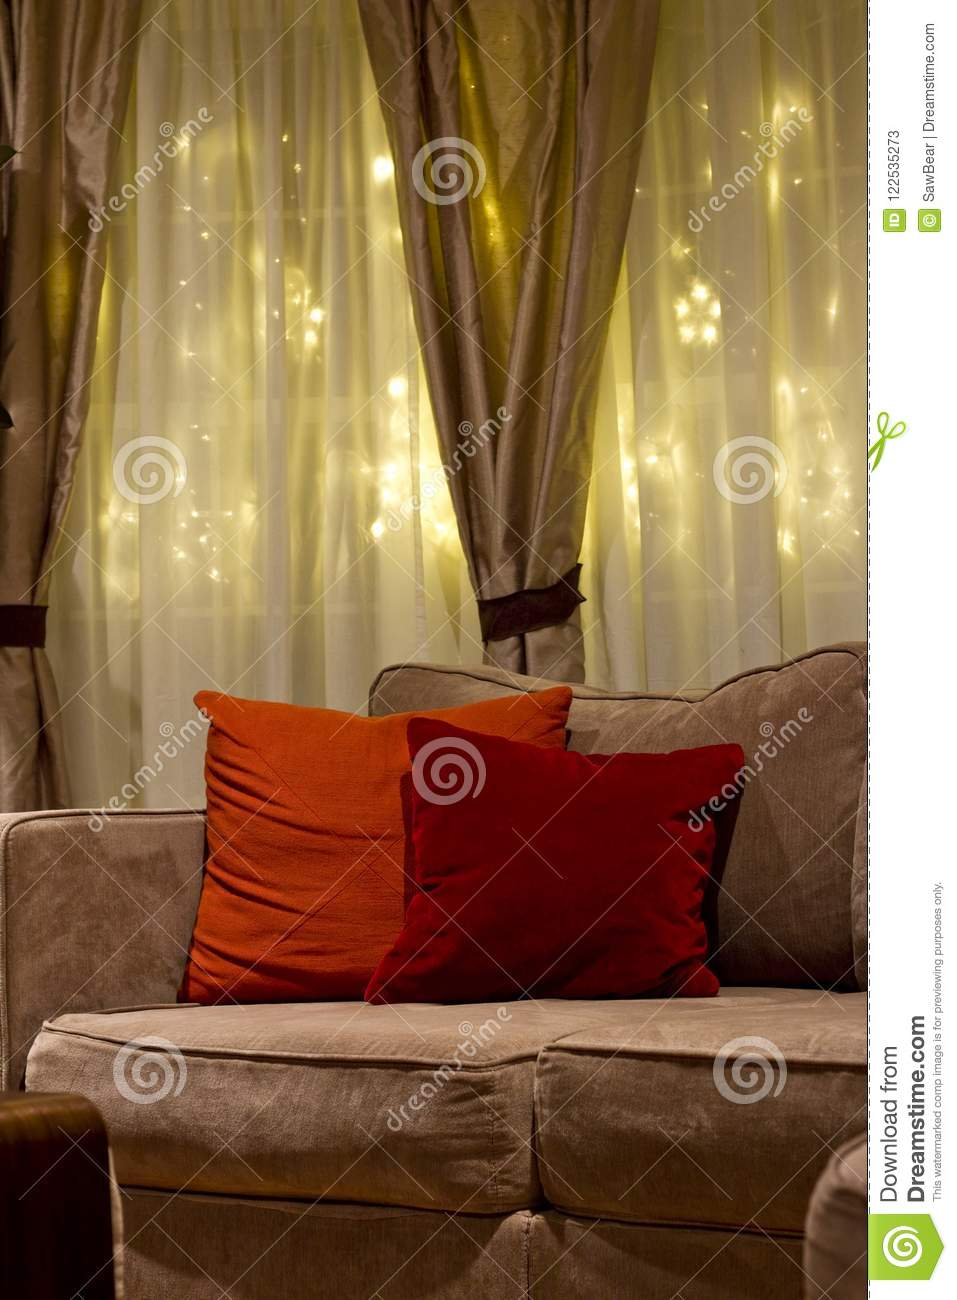 Cozy Nighttime Living Room Couch Stock Image Image Of Furnishing Comfort 122535273